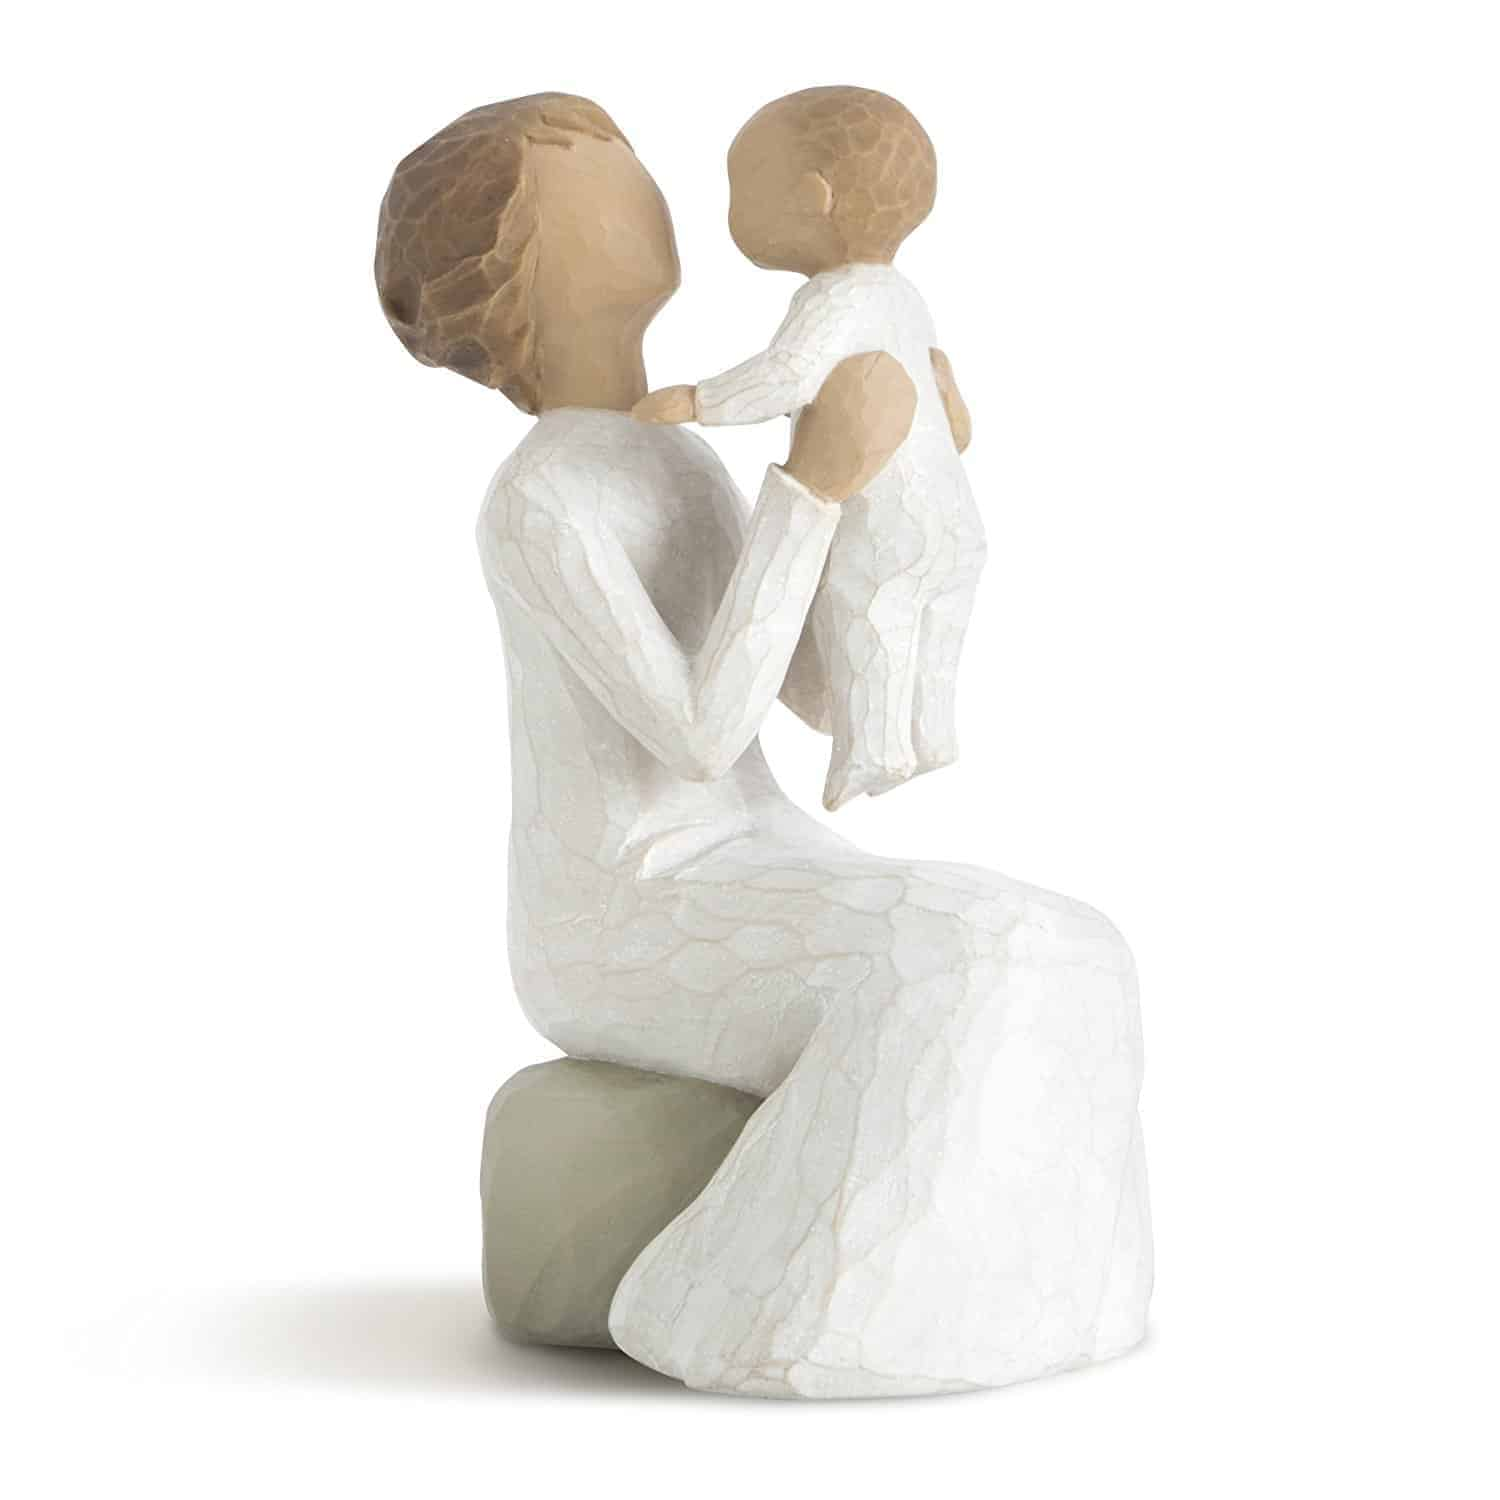 Willow Tree Figurine gifts for new Grandmothers